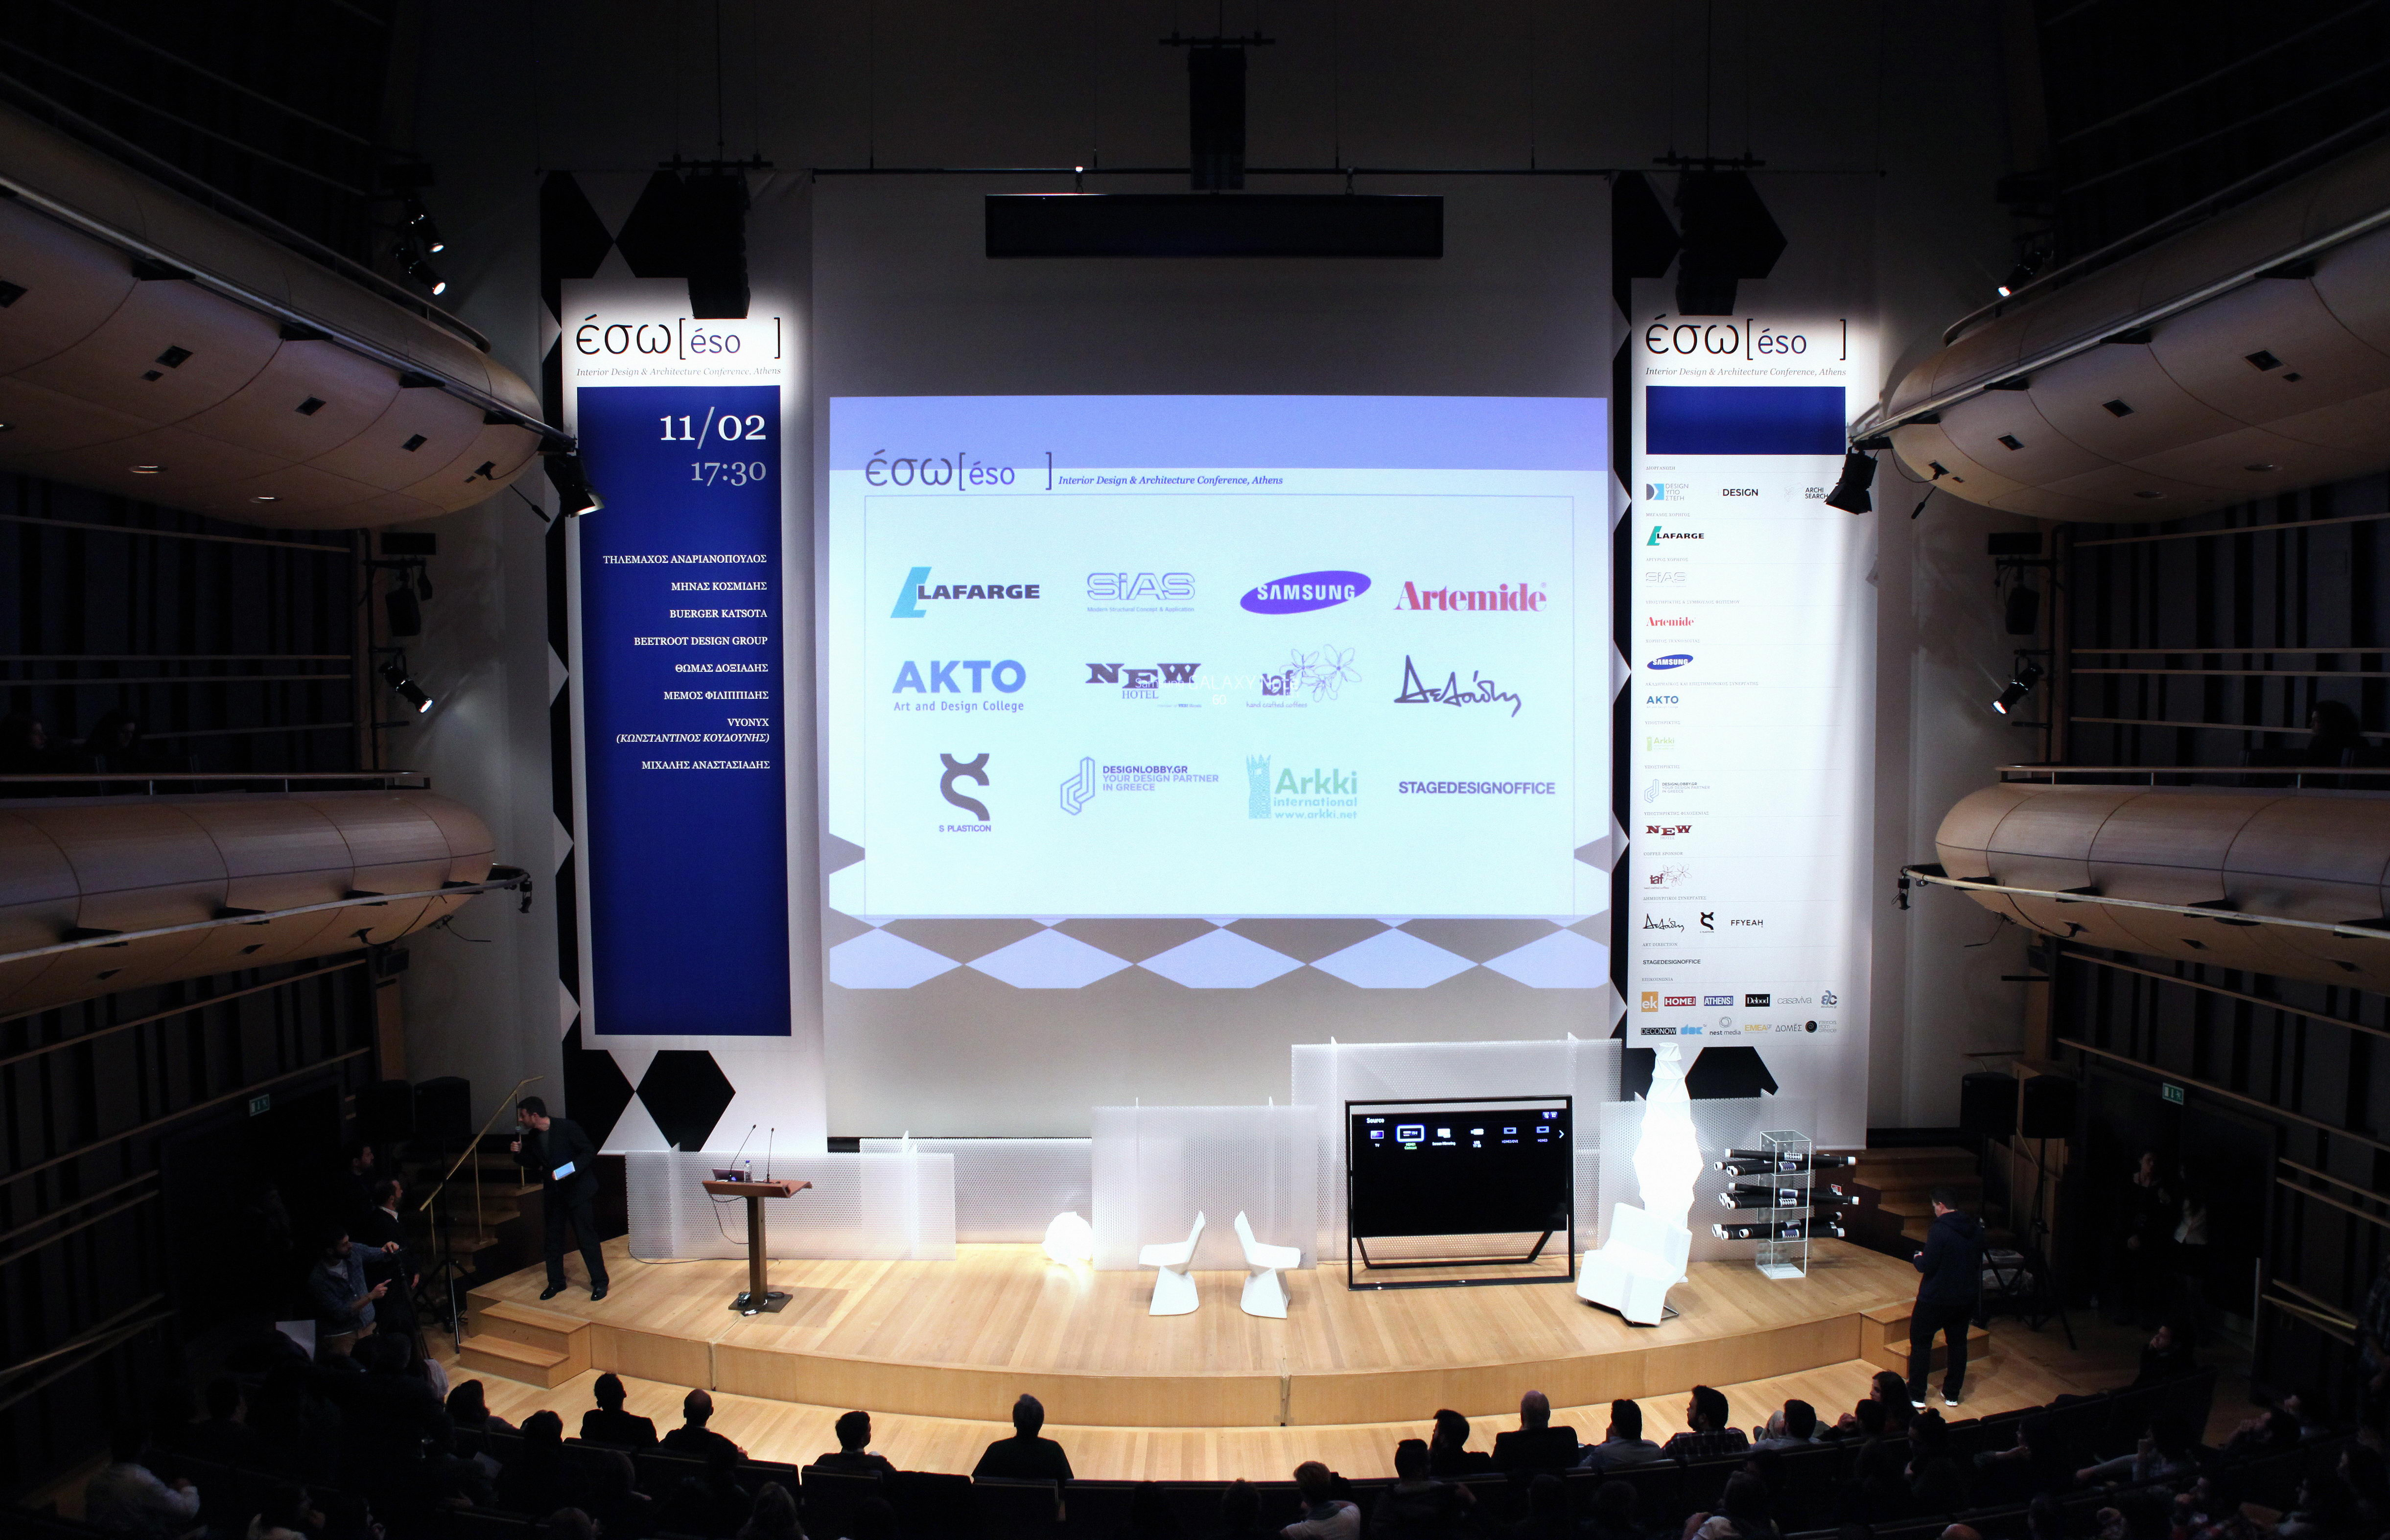 Samsung_Esw Conference 2